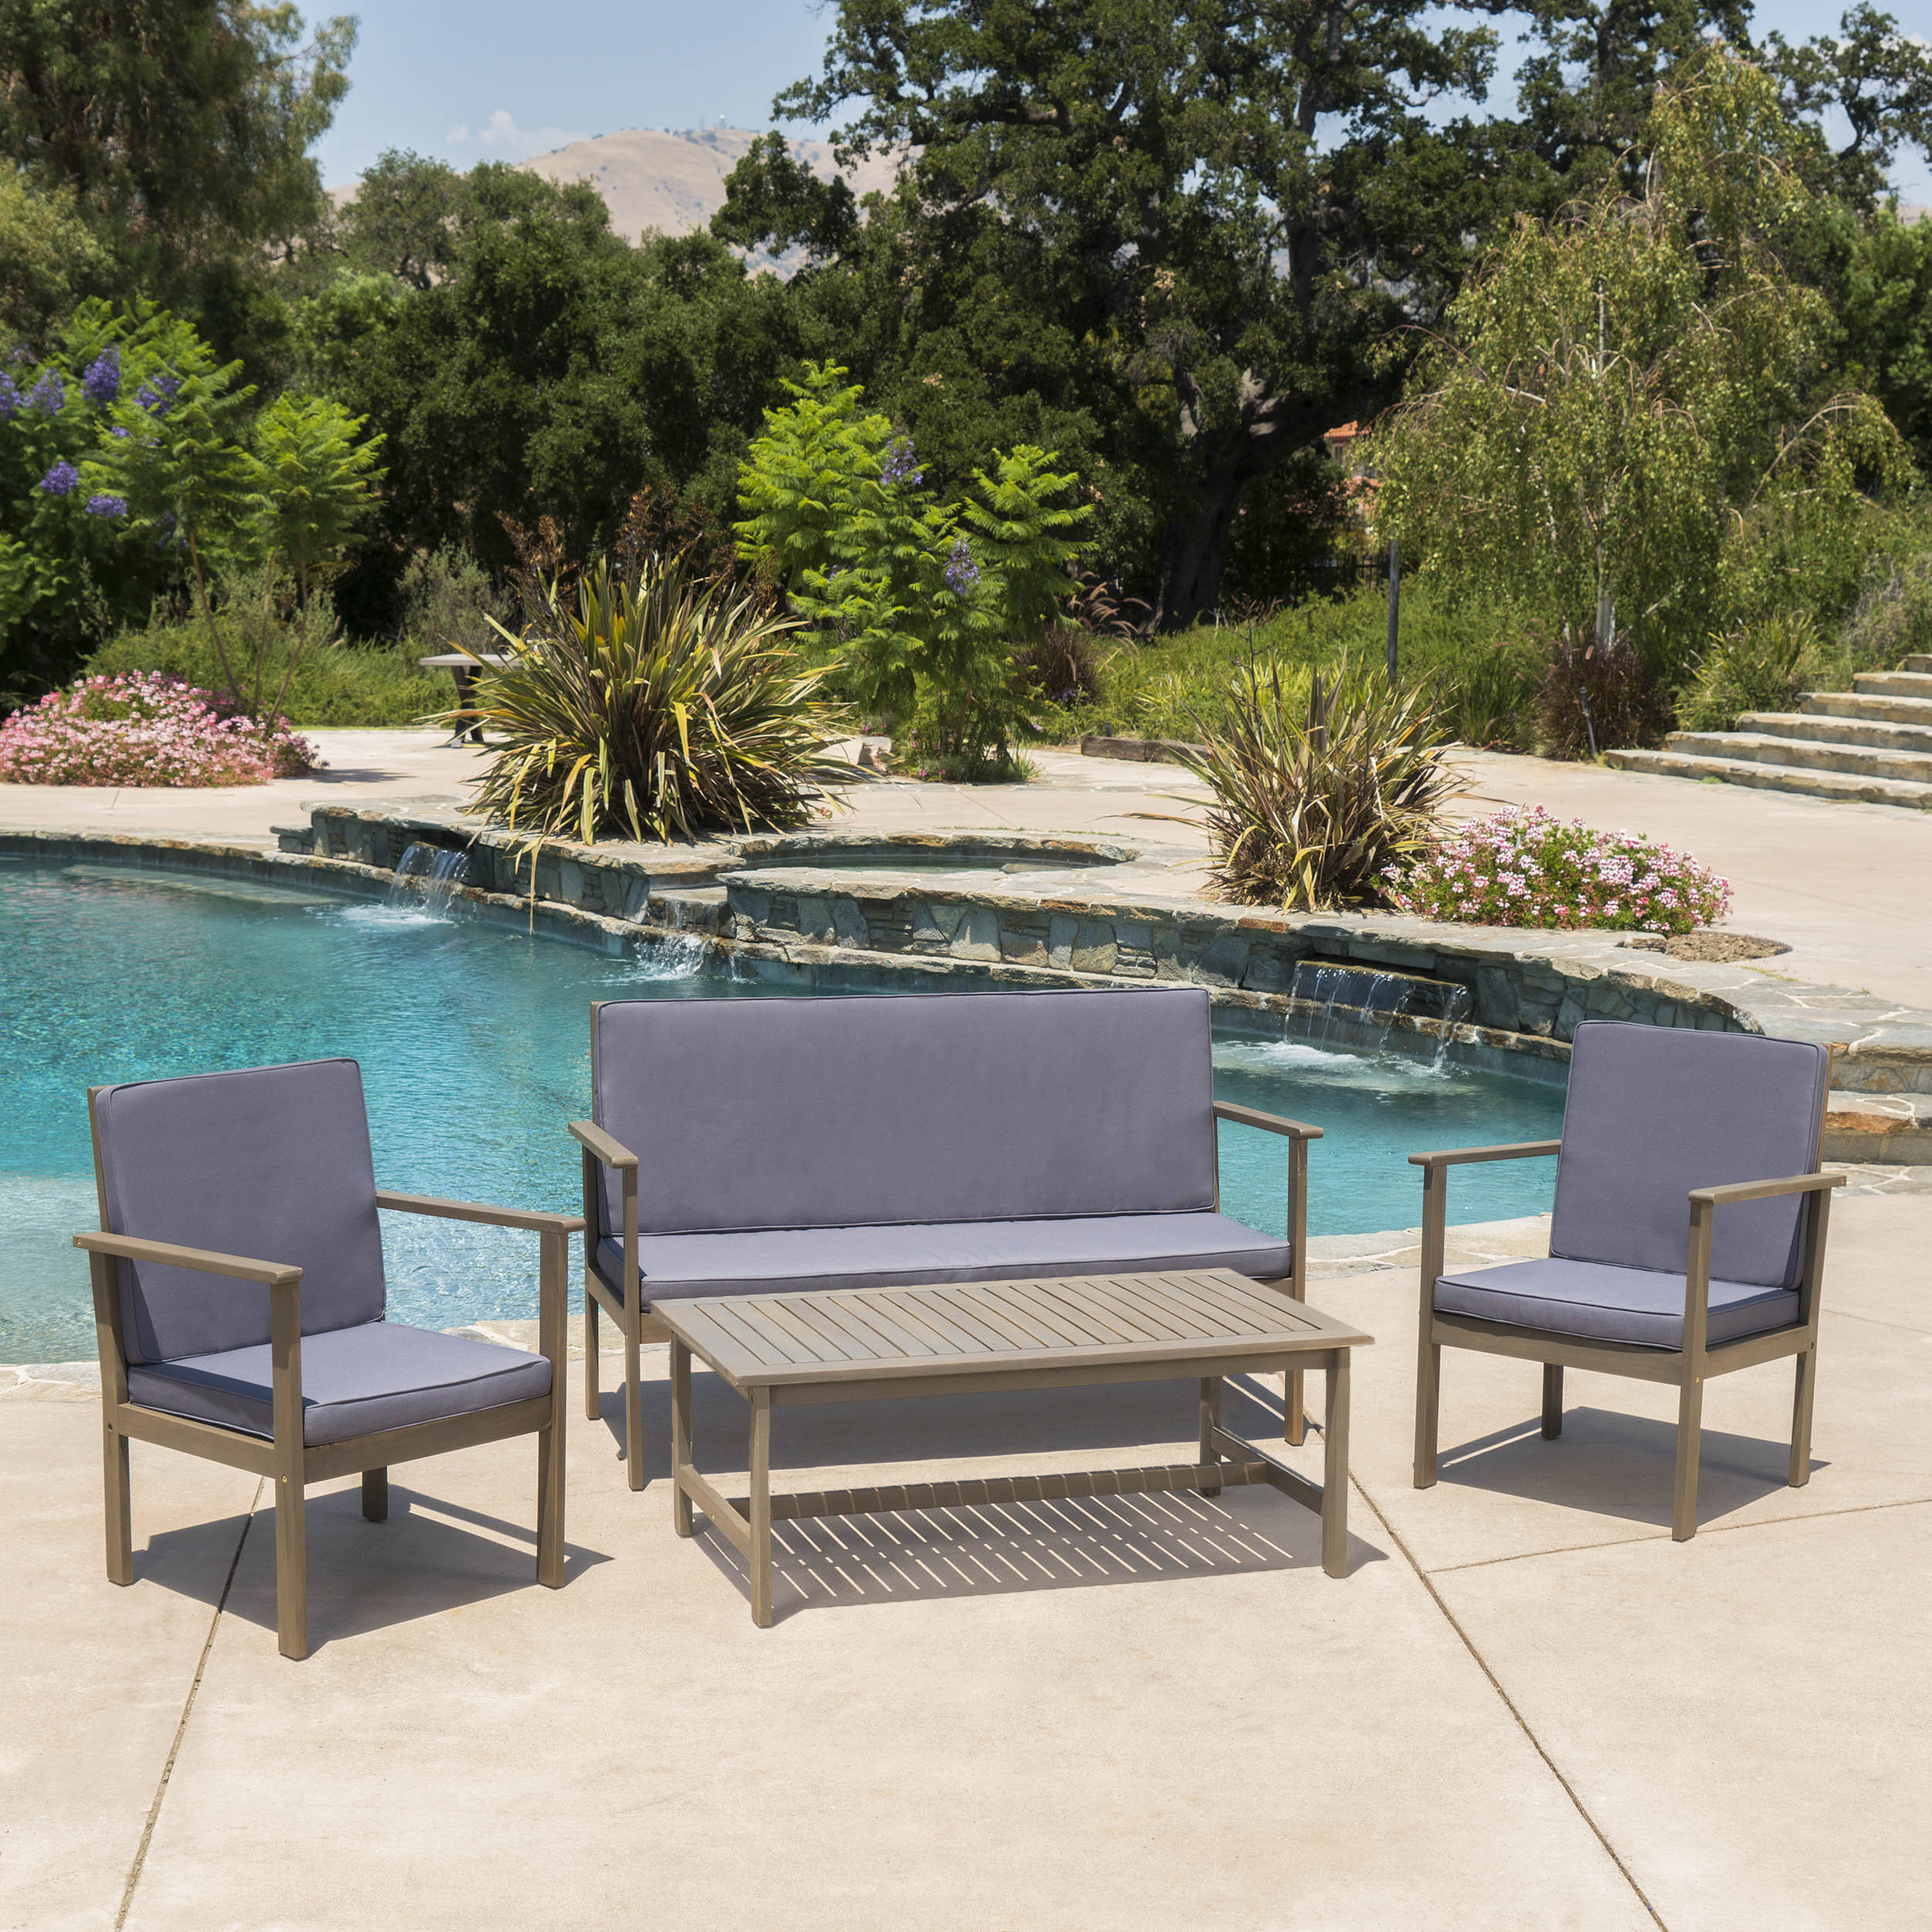 Cascada Outdoor 4 Piece Acacia Wood Chat Set with Cushions and Rectangle Coffee Table, Grey, Dark Grey